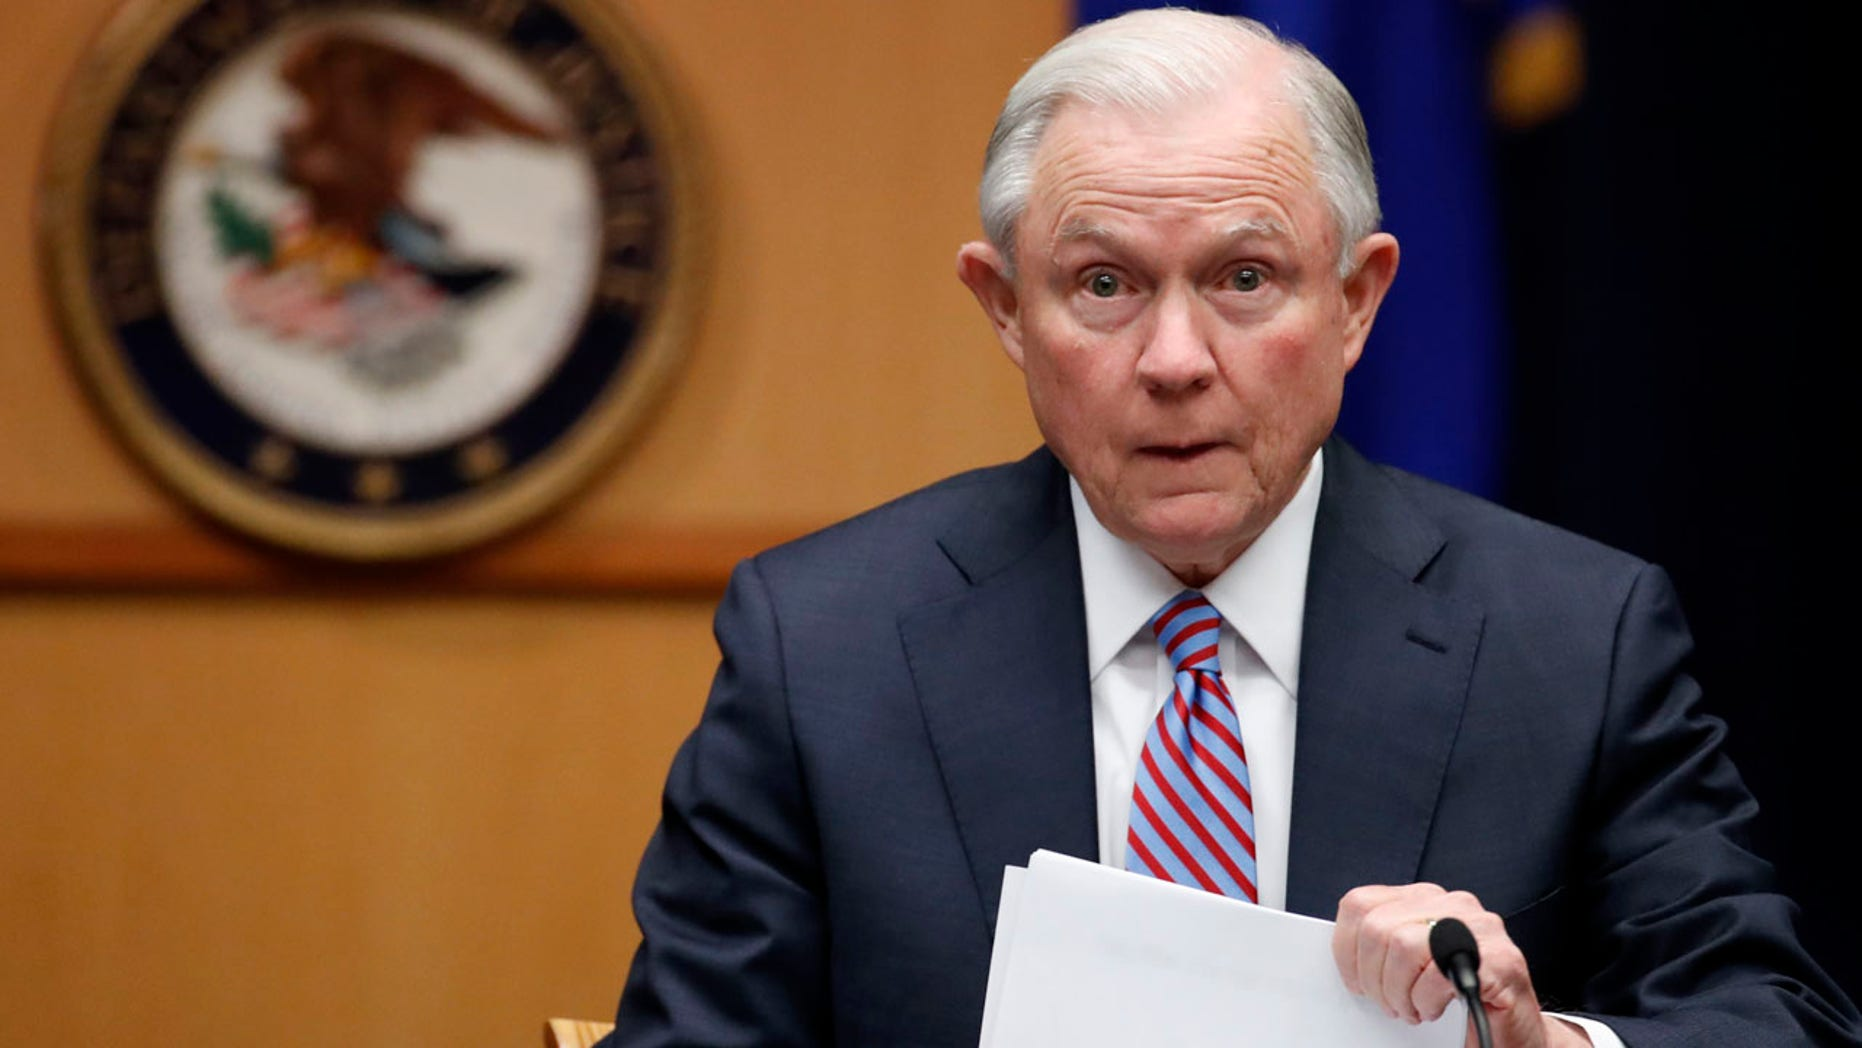 In this April 18, 2017 file photo Attorney General Jeff Sessions prepares to speak before a meeting of the Attorney General's Organized Crime Council and Organized Crime Drug Enforcement Task Forces (OCDETF) Executive Committee to discuss implementation of the President's Executive Order 13773, at the Department of Justice in Washington.